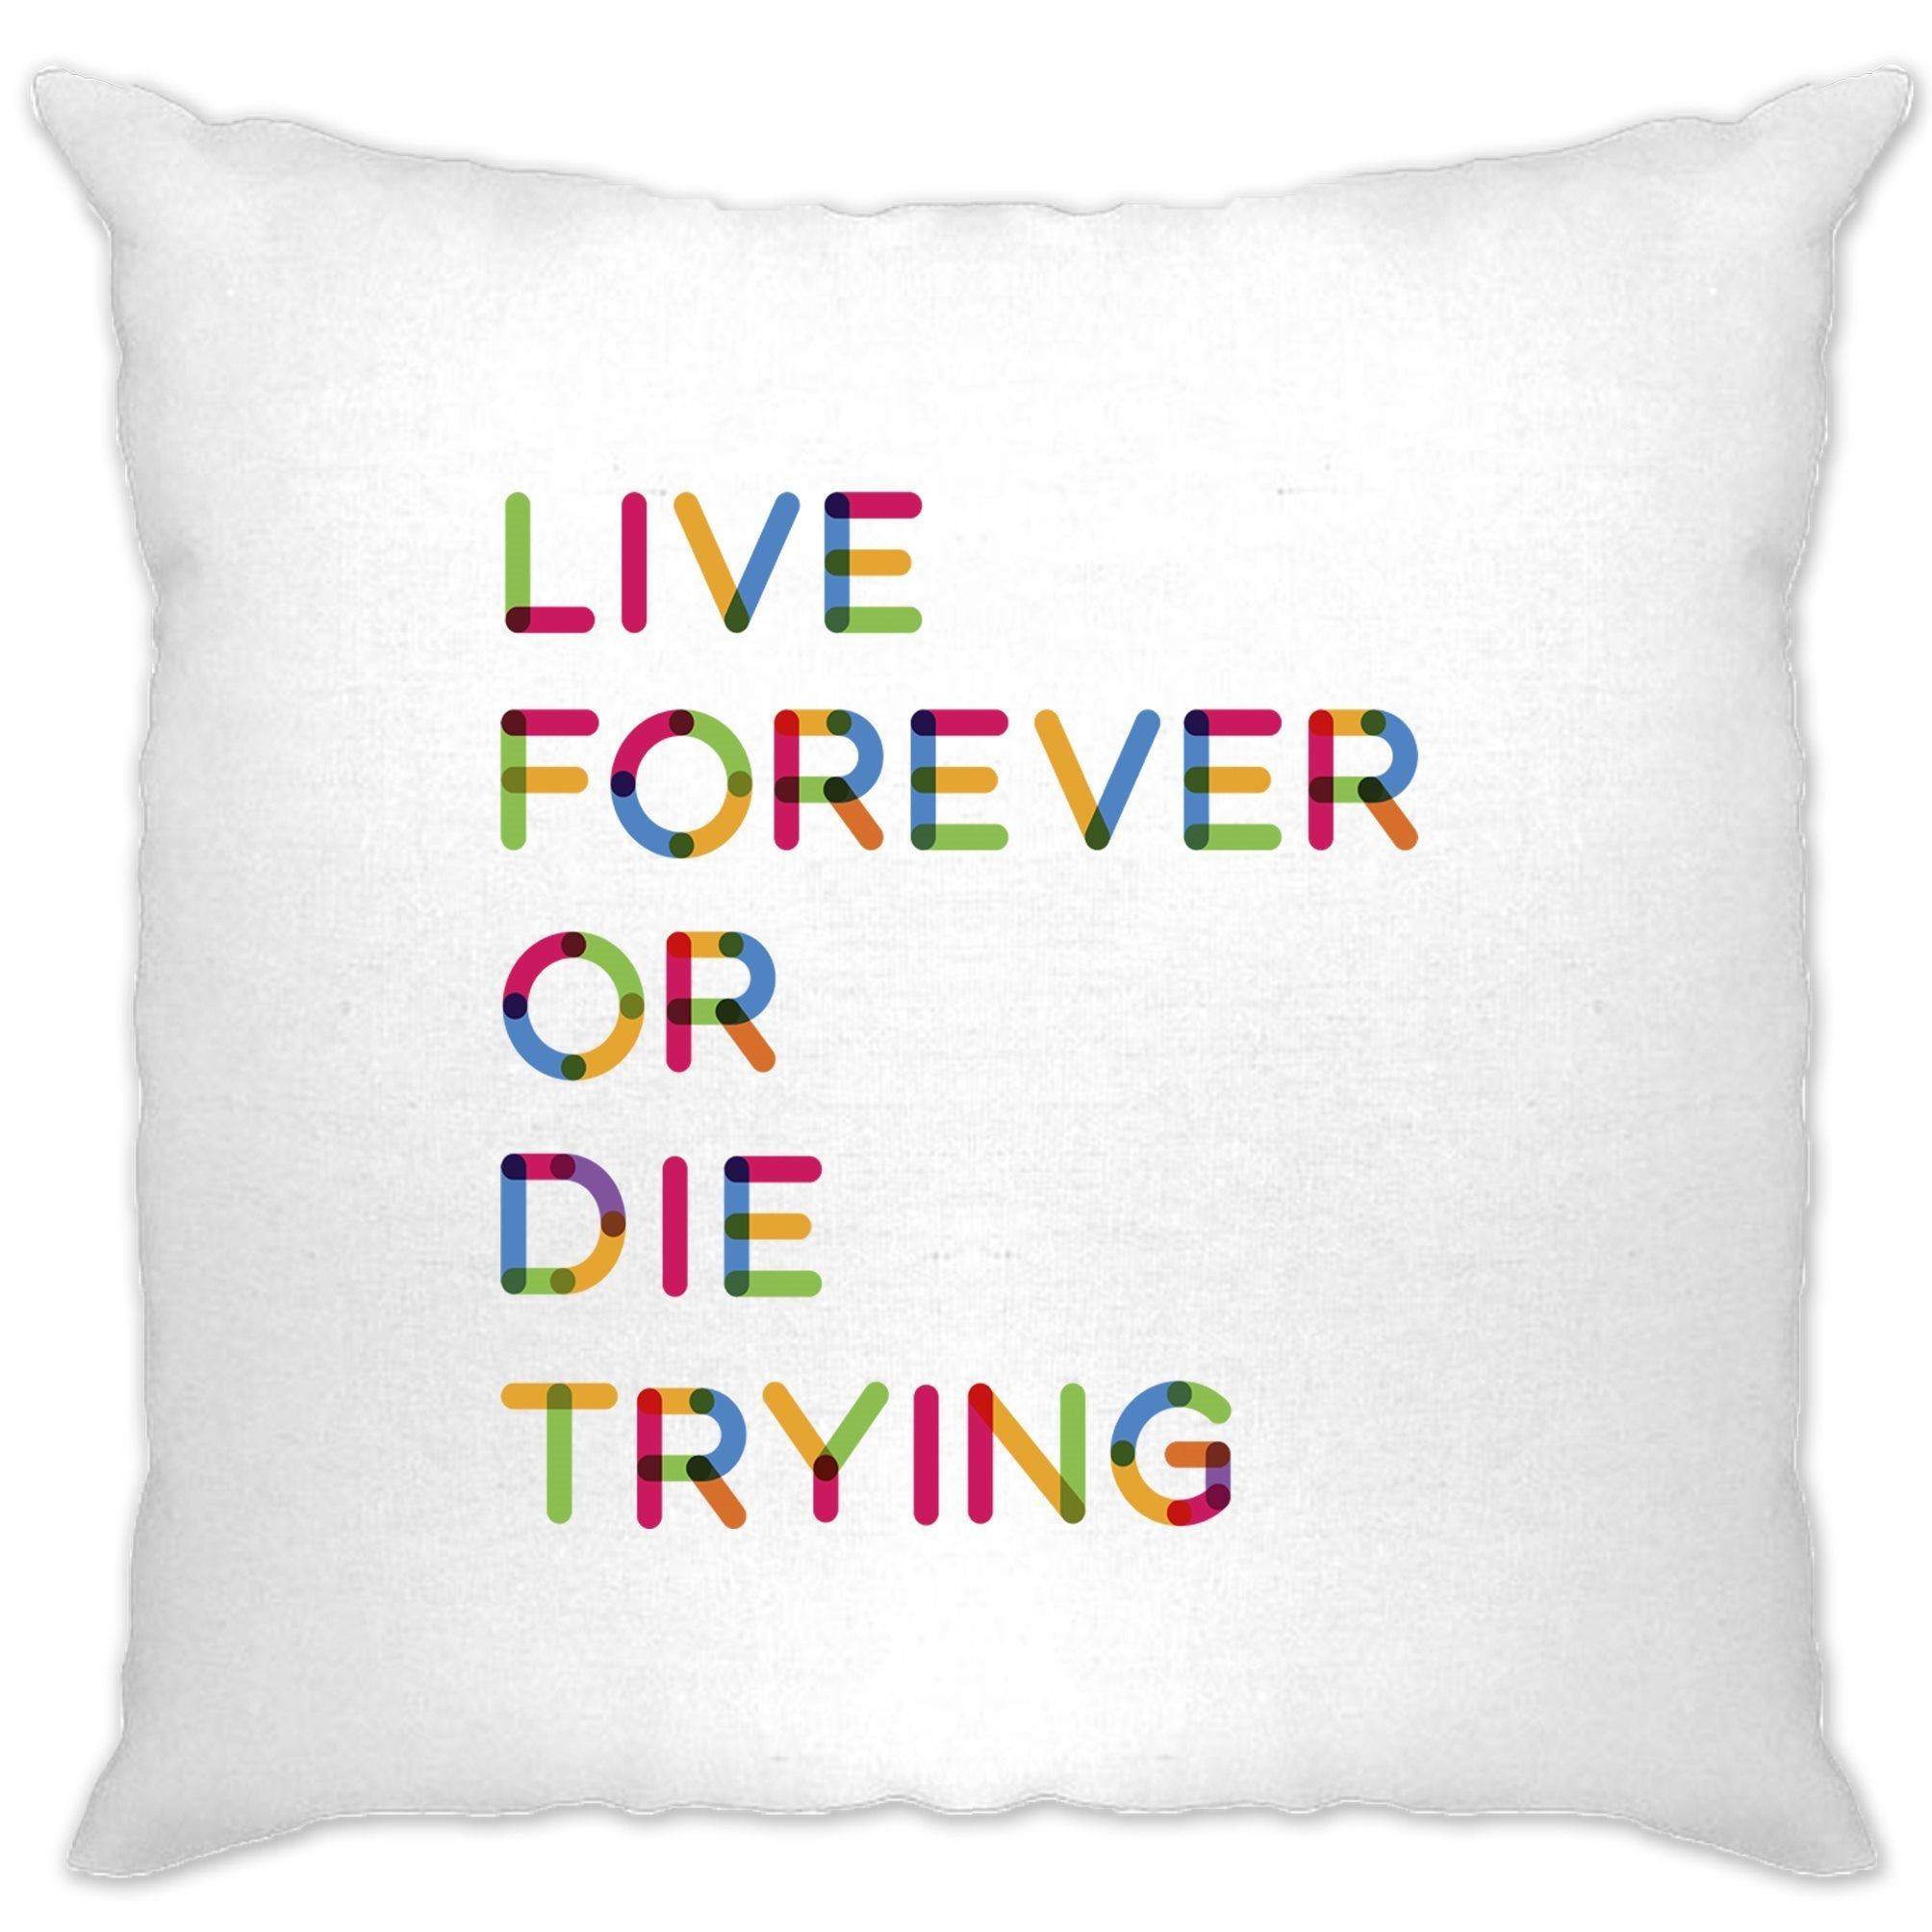 Inspirational Cushion Cover Live Forever Or Die Trying